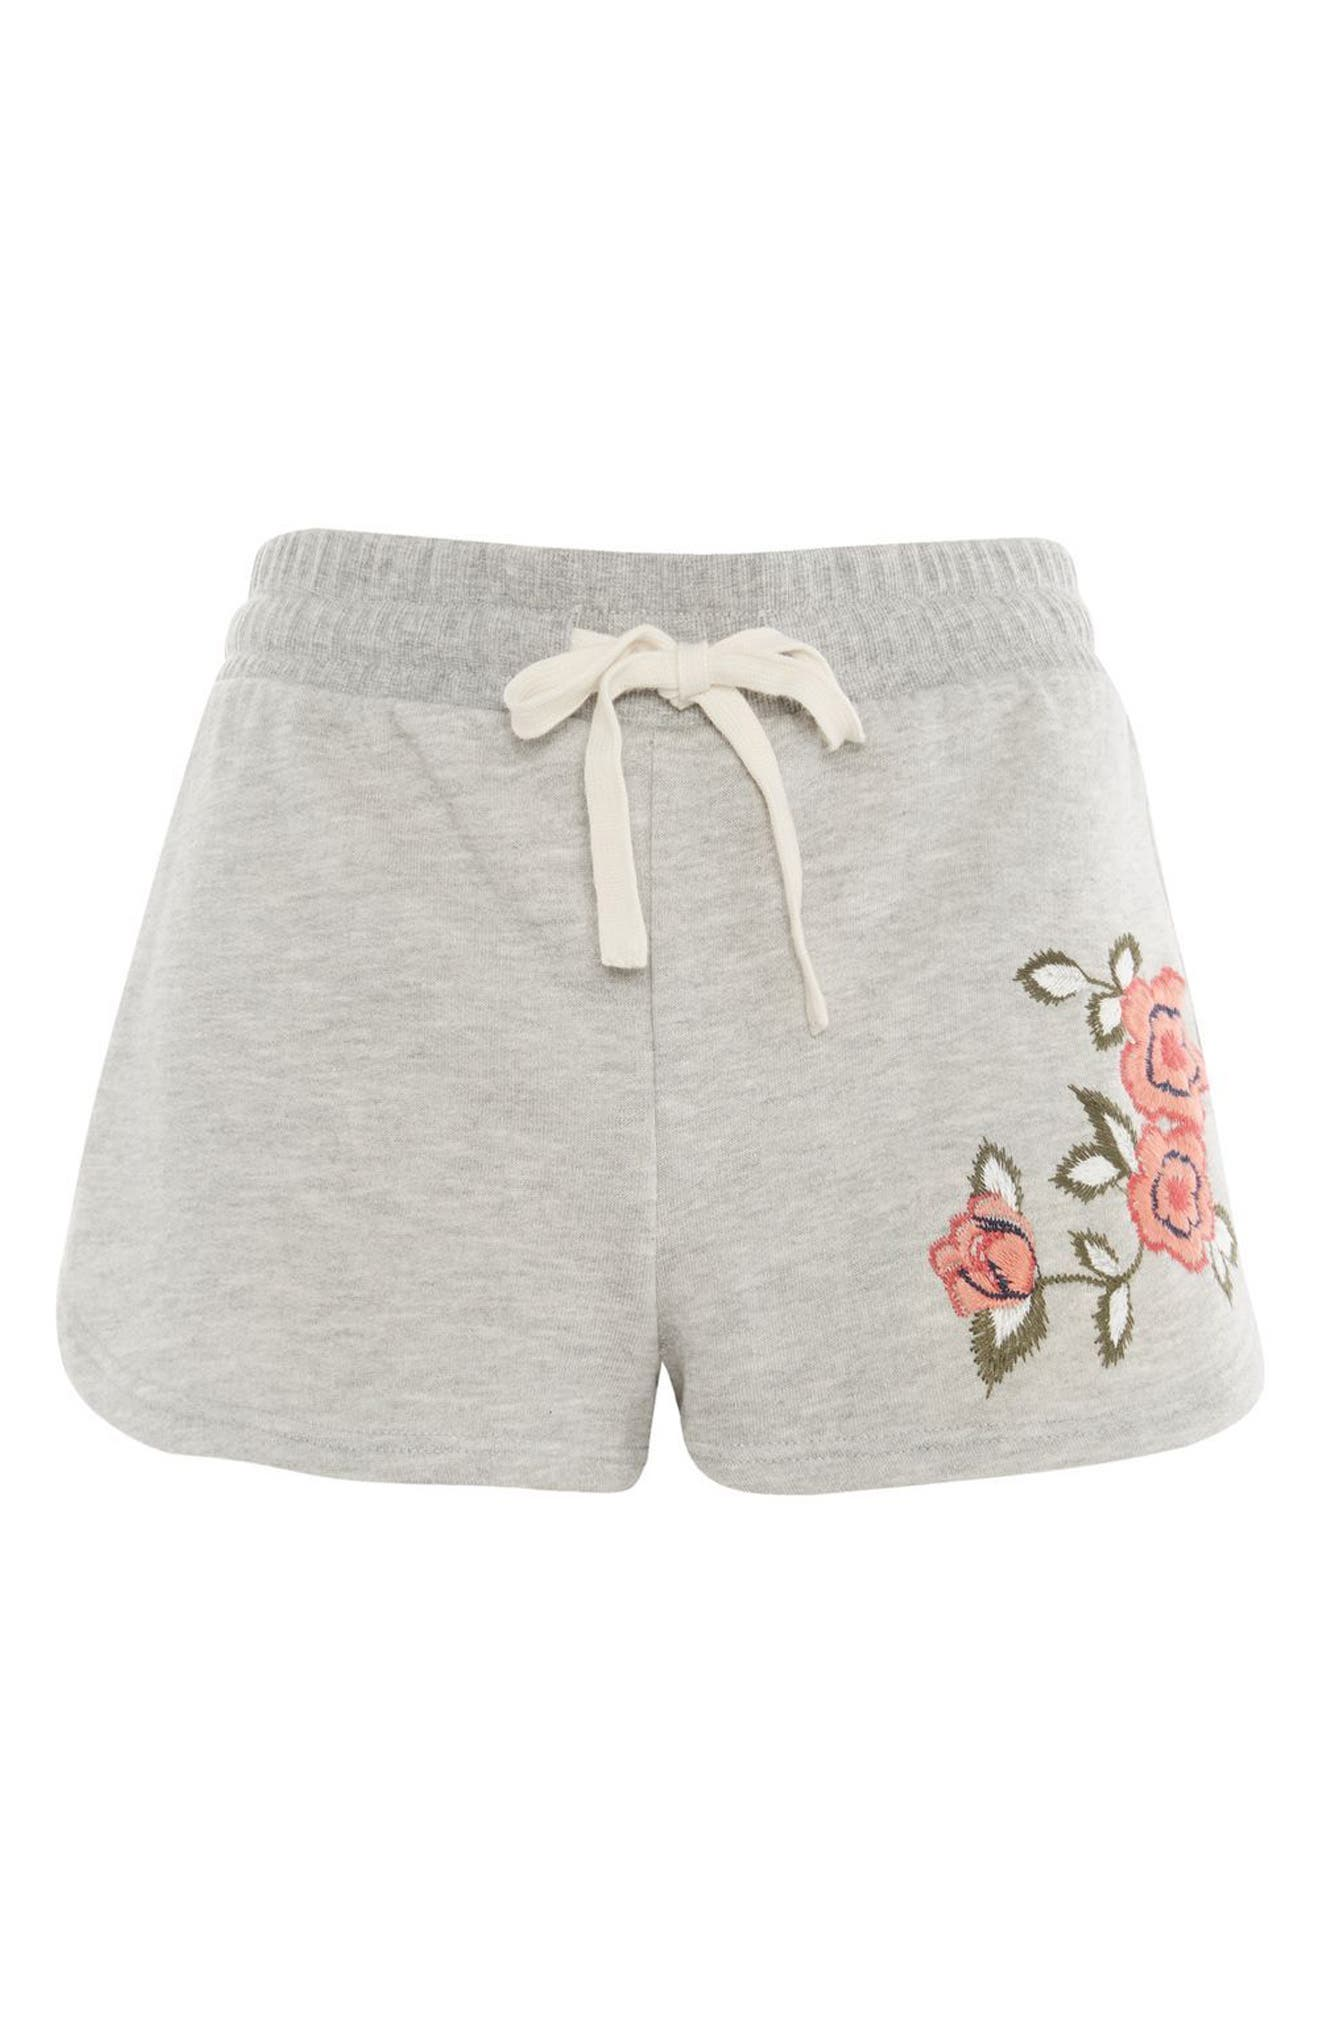 Floral Embroidered Lounge Shorts,                             Main thumbnail 1, color,                             Grey Multi